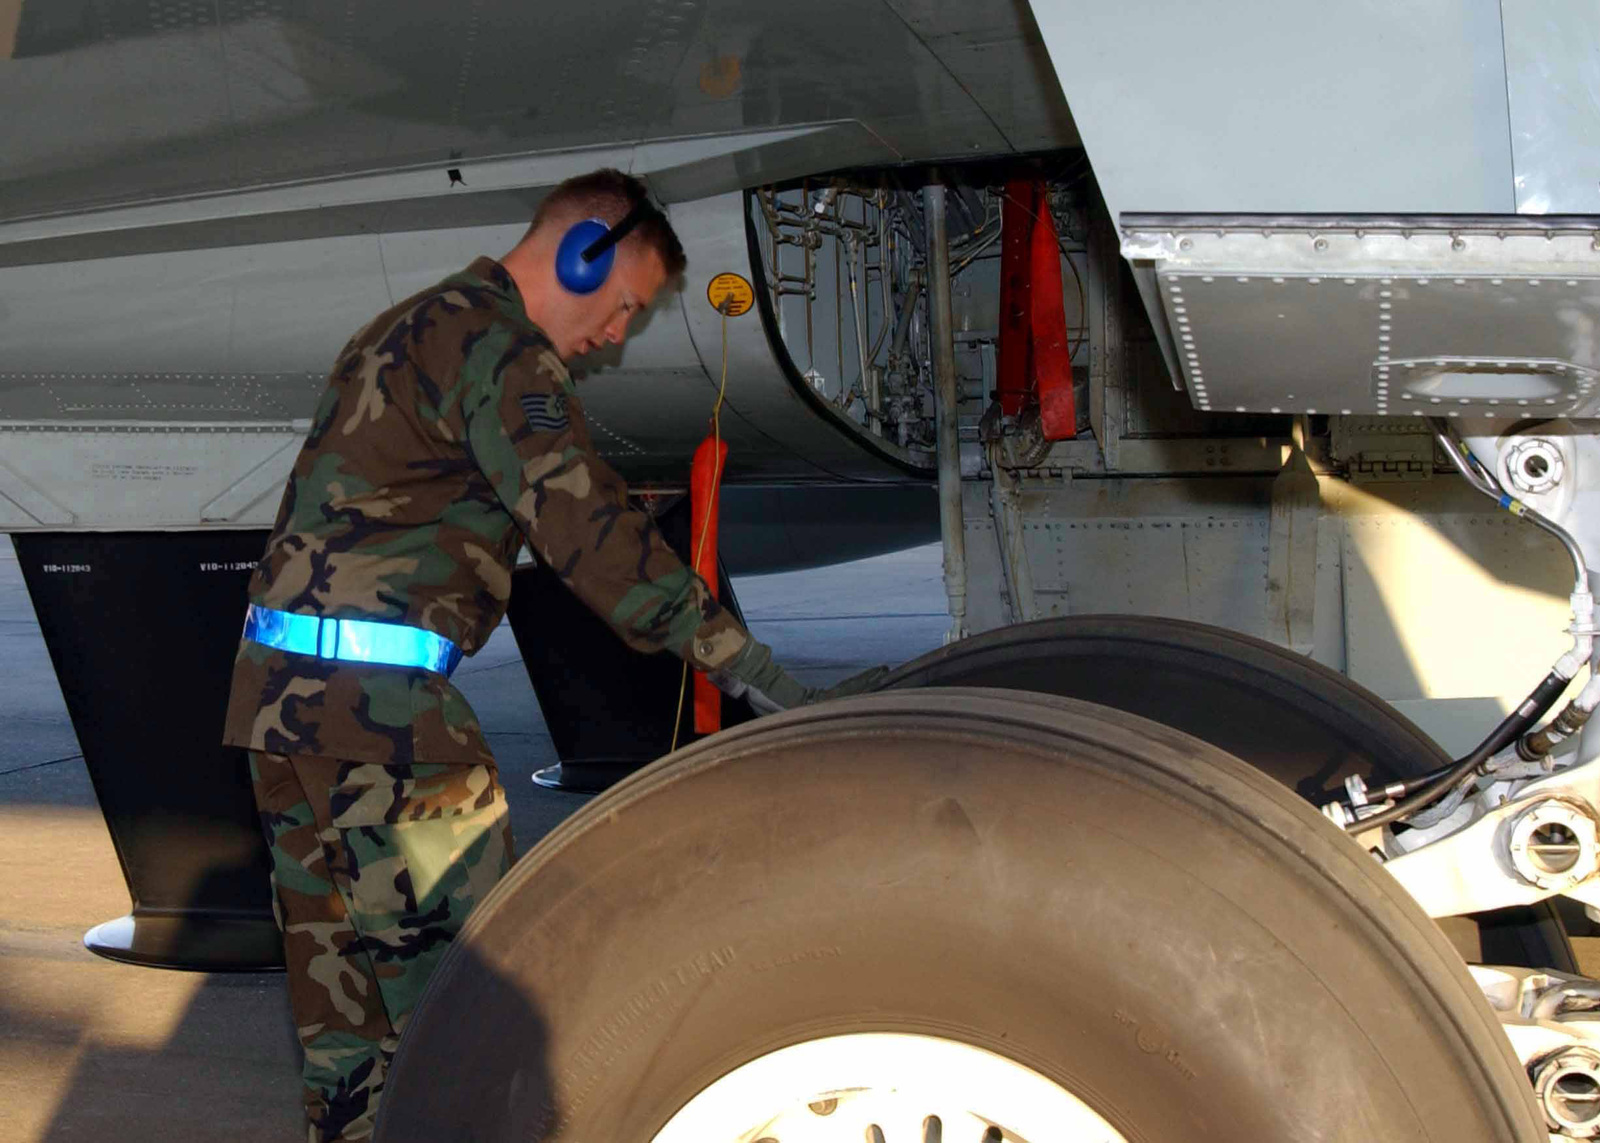 US Air Force (USAF) Technical Sergeant (TSGT) Dan Young, Hydraulic Systems Technician, 922nd Expeditionary Reconnaissance Squadron (ERS), performs preflight checks on the landing gear hydraulic system of an USAF RC-135 Rivet Joint aircraft prior to conducting a mission from Incirlik Air Base (AB), Turkey, during Combined Task Force, Operation NORTHERN WATCH